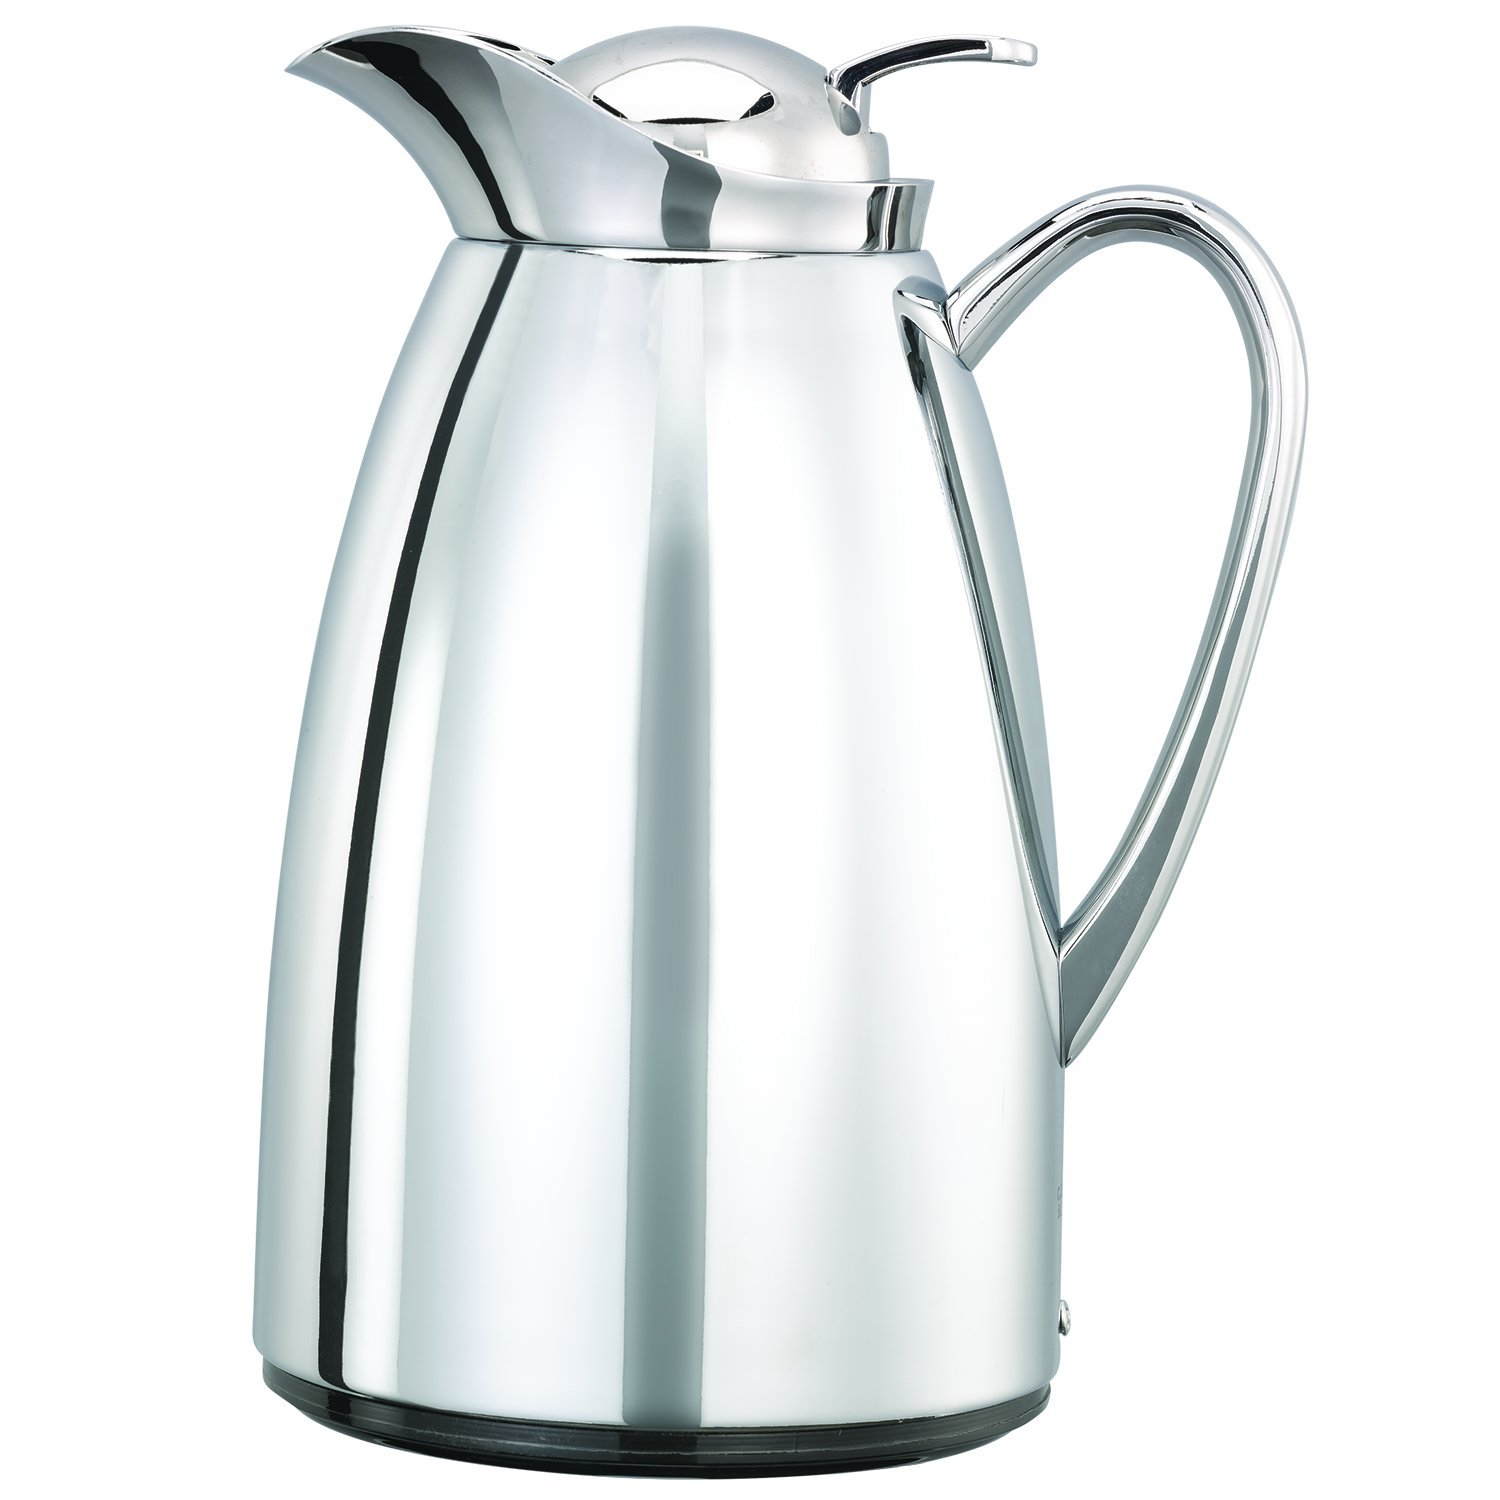 Service Ideas CJZS6CH Carafe, Stainless Steel Lined, All Polished, 0.6 L